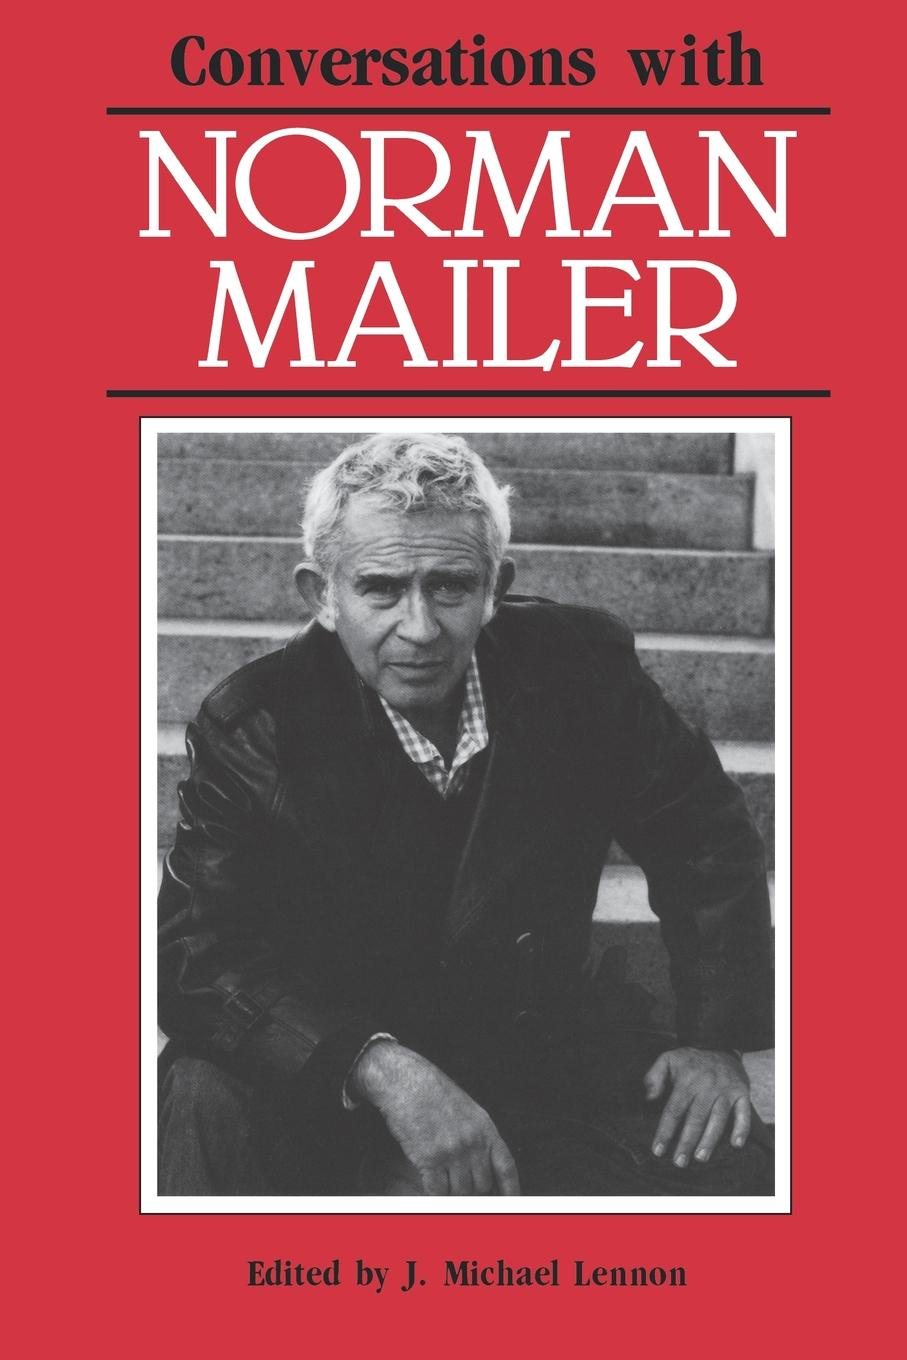 Norman Mailer Conversations with